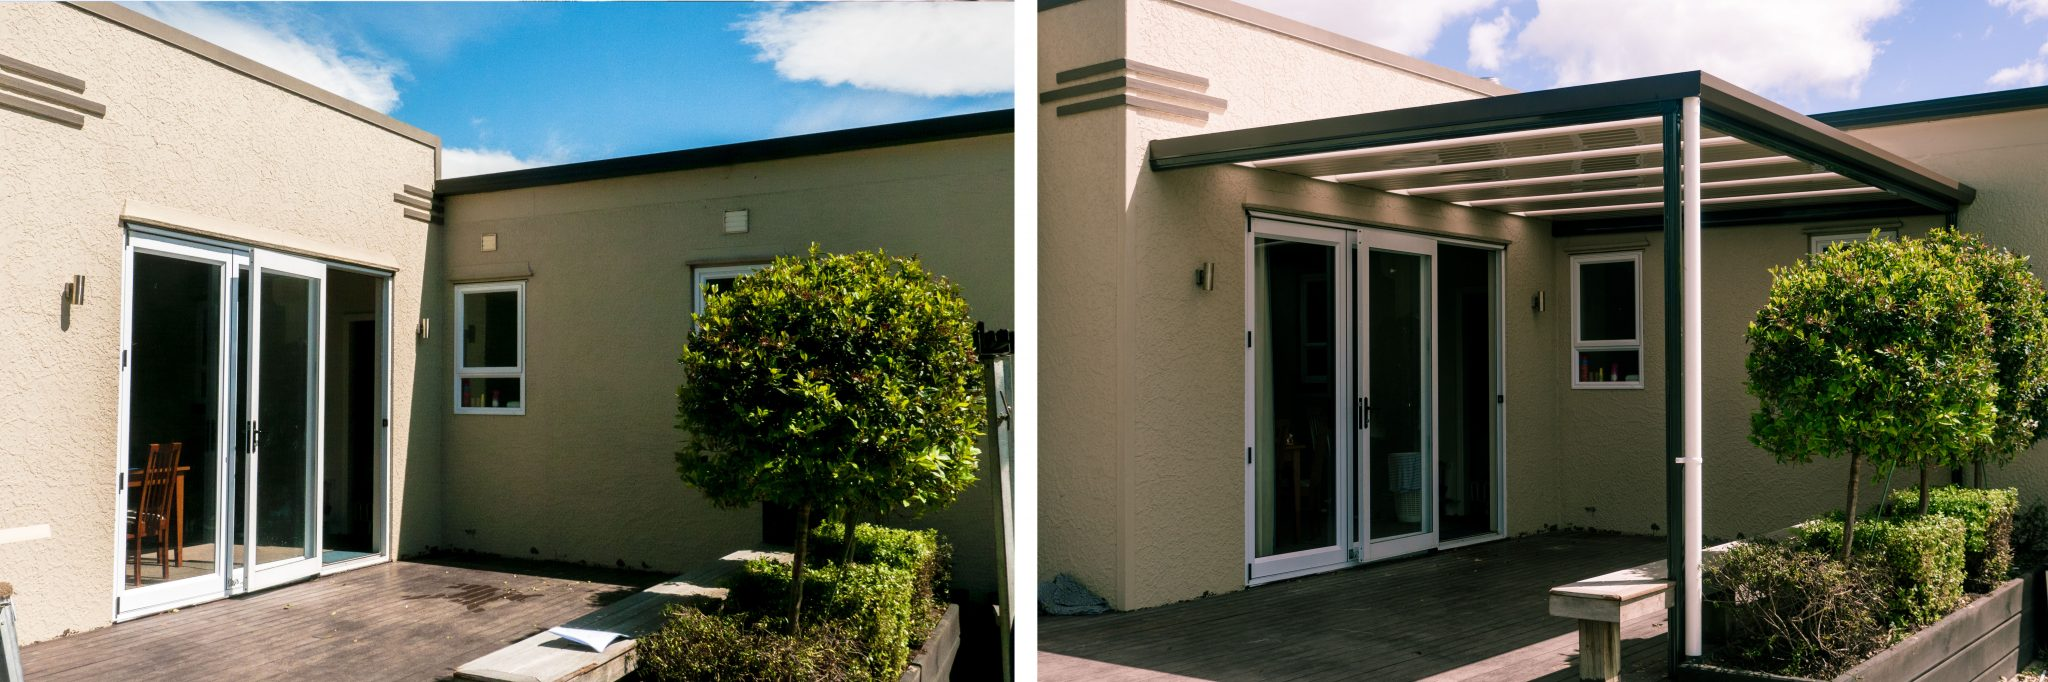 Before and After comparison of an Art Deco Style Hastings home that has no pergola roof in the before shot and is covered by a pergola roof in the after shot